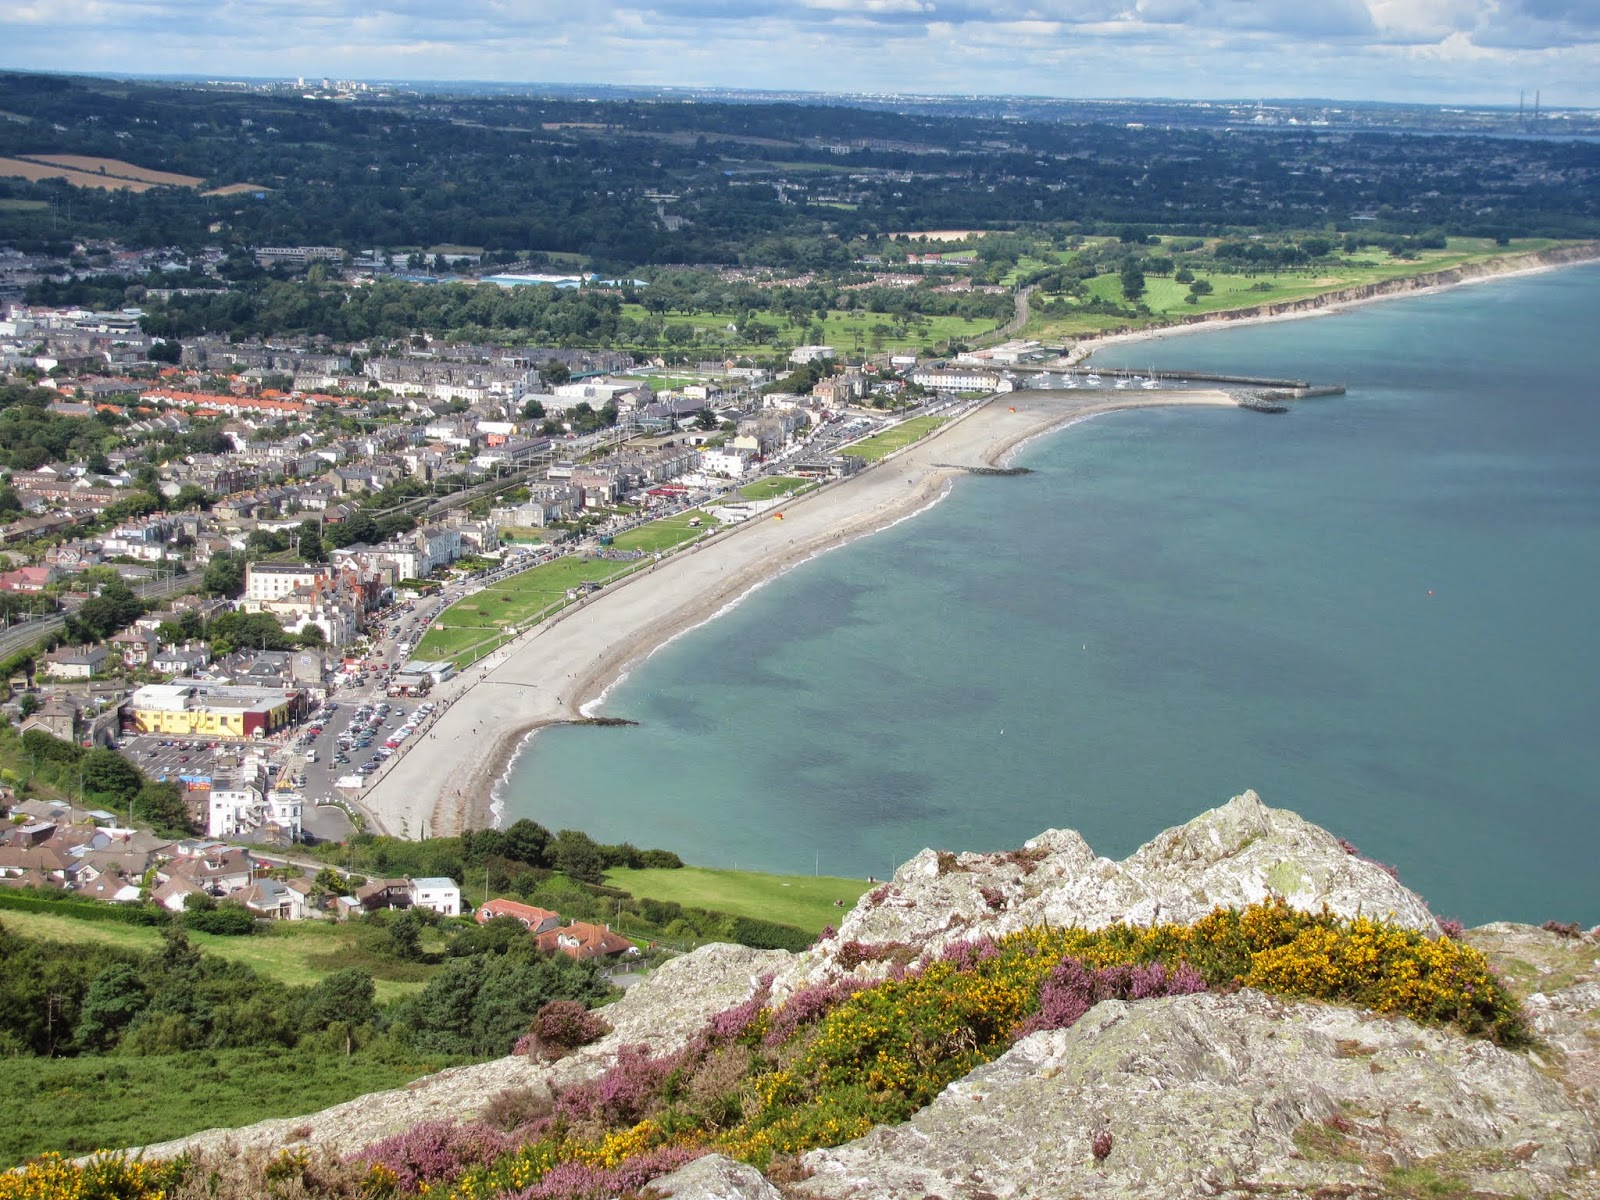 Bray Town from the top of Bray Head, Ireland